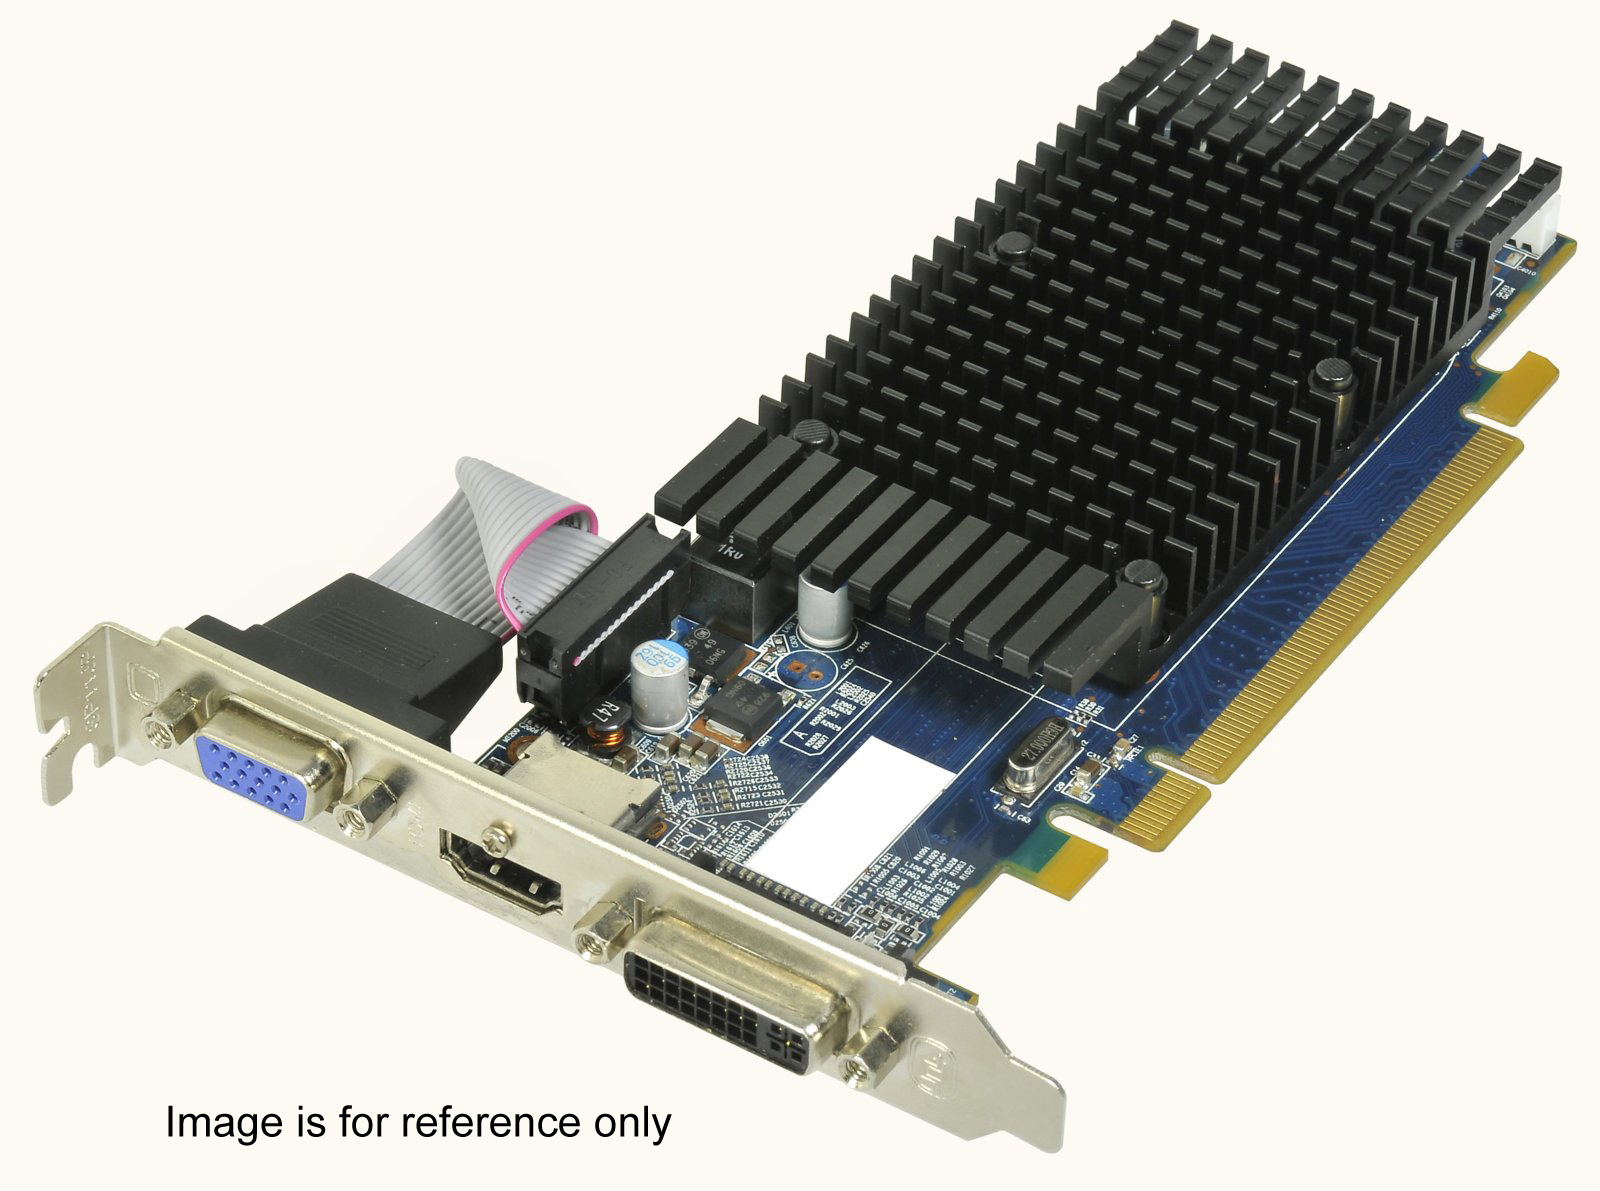 Drivers for ATI Radeon Xpress M Motherboard for Windows 7